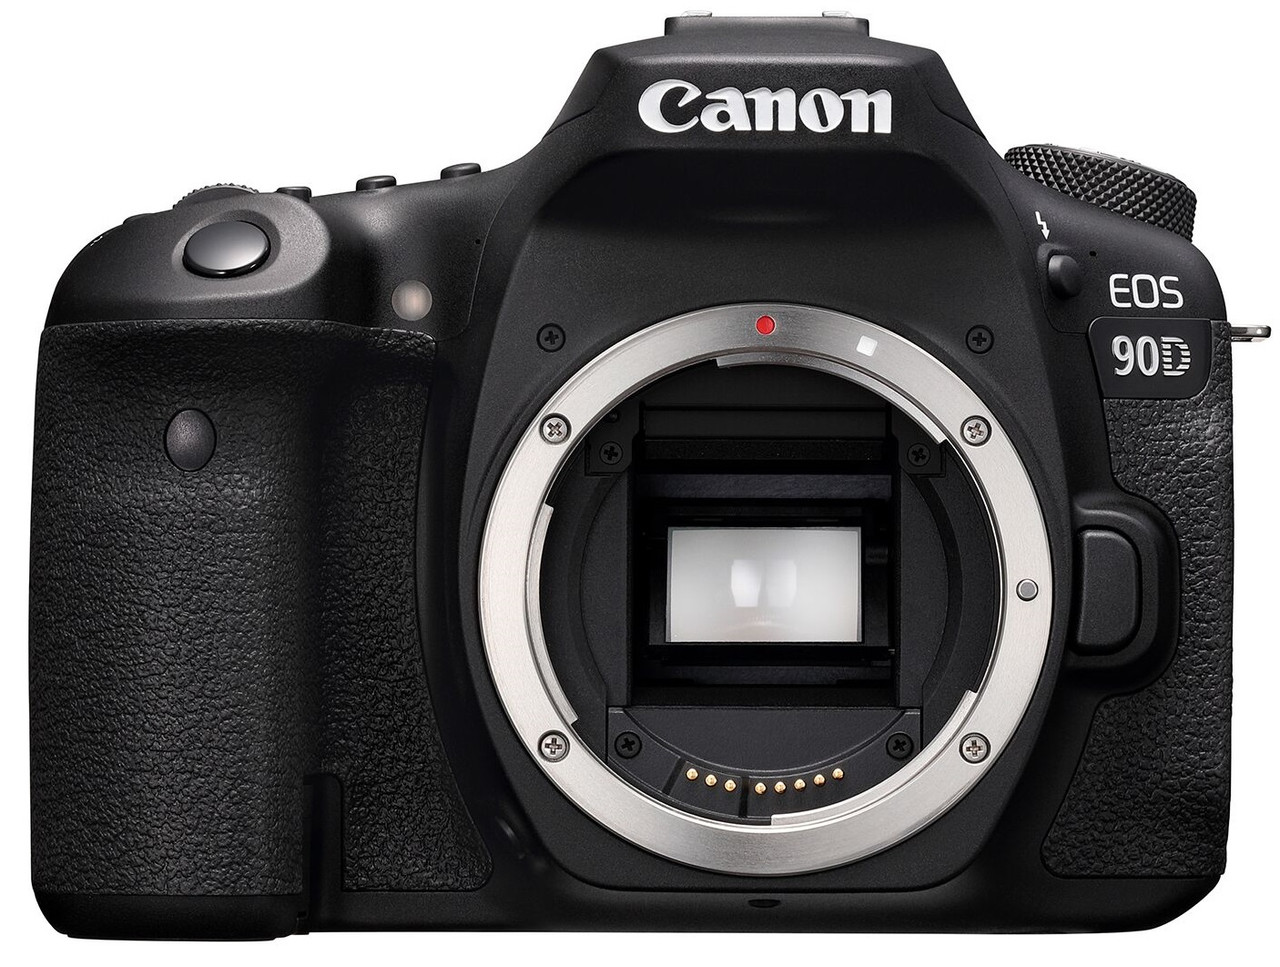 Canon EOS 90D Digital SLR Camera - Body Only